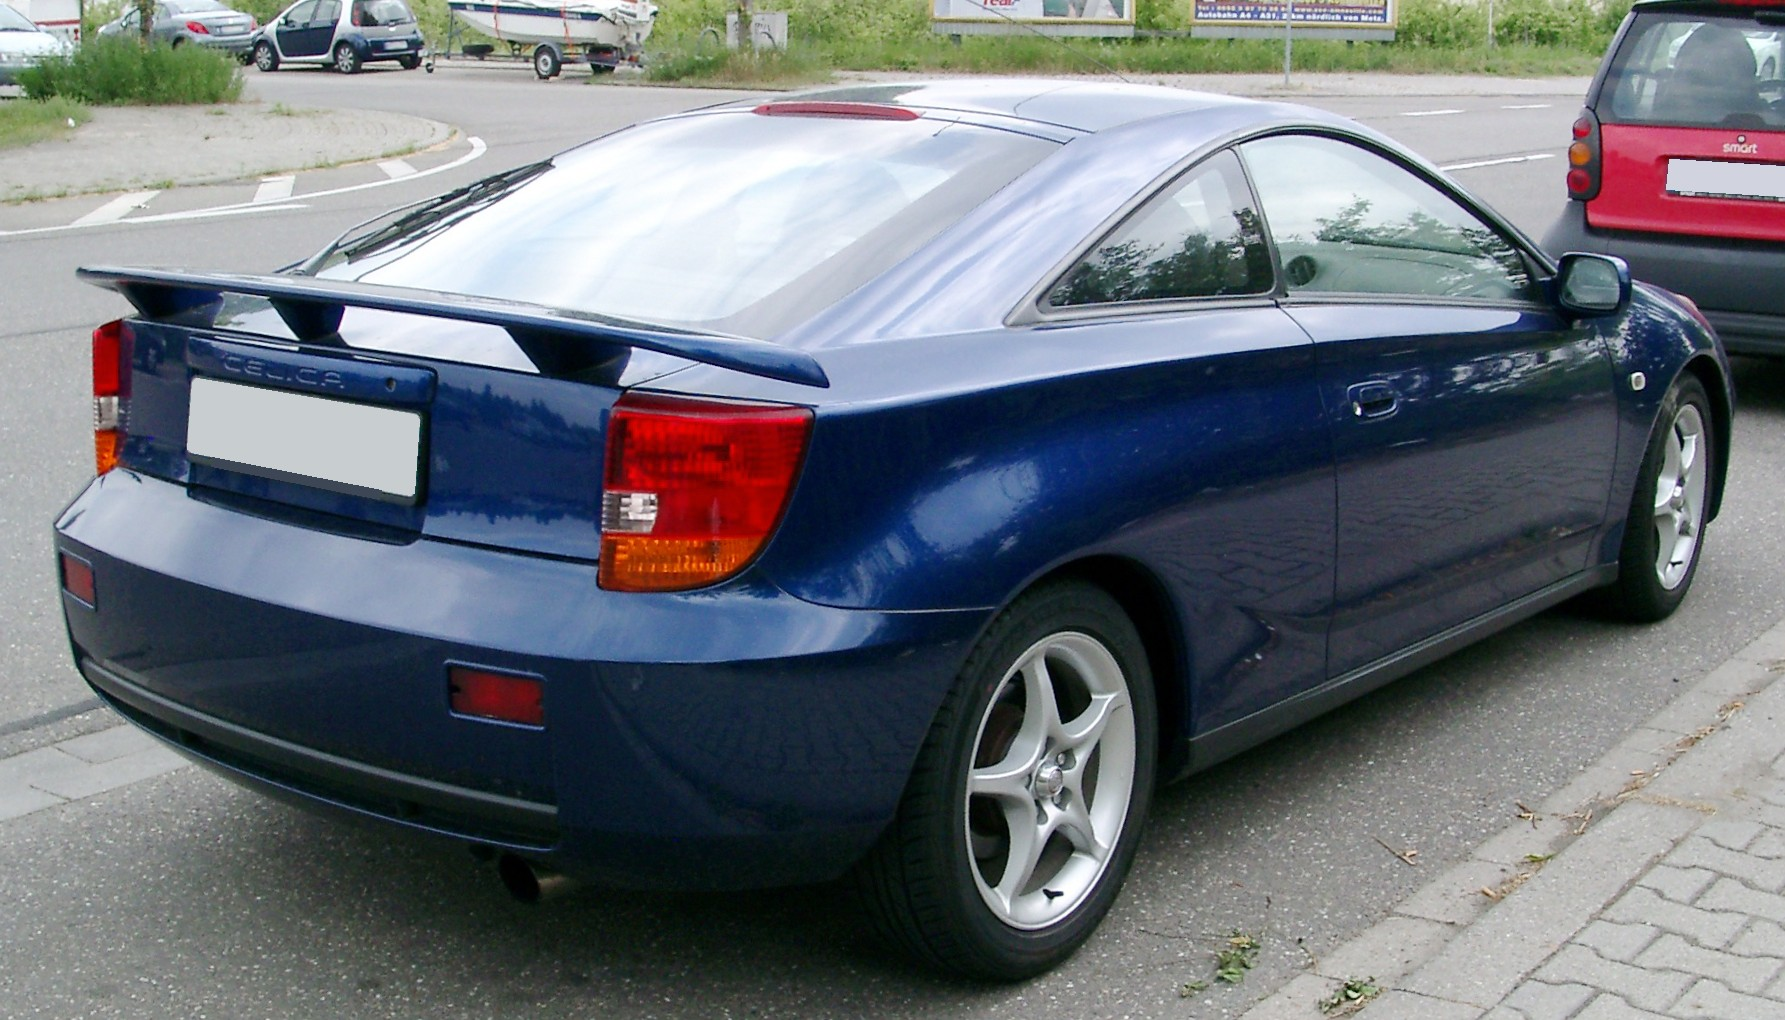 File:Toyota Celica rear 20080521.jpg - Wikimedia Commons